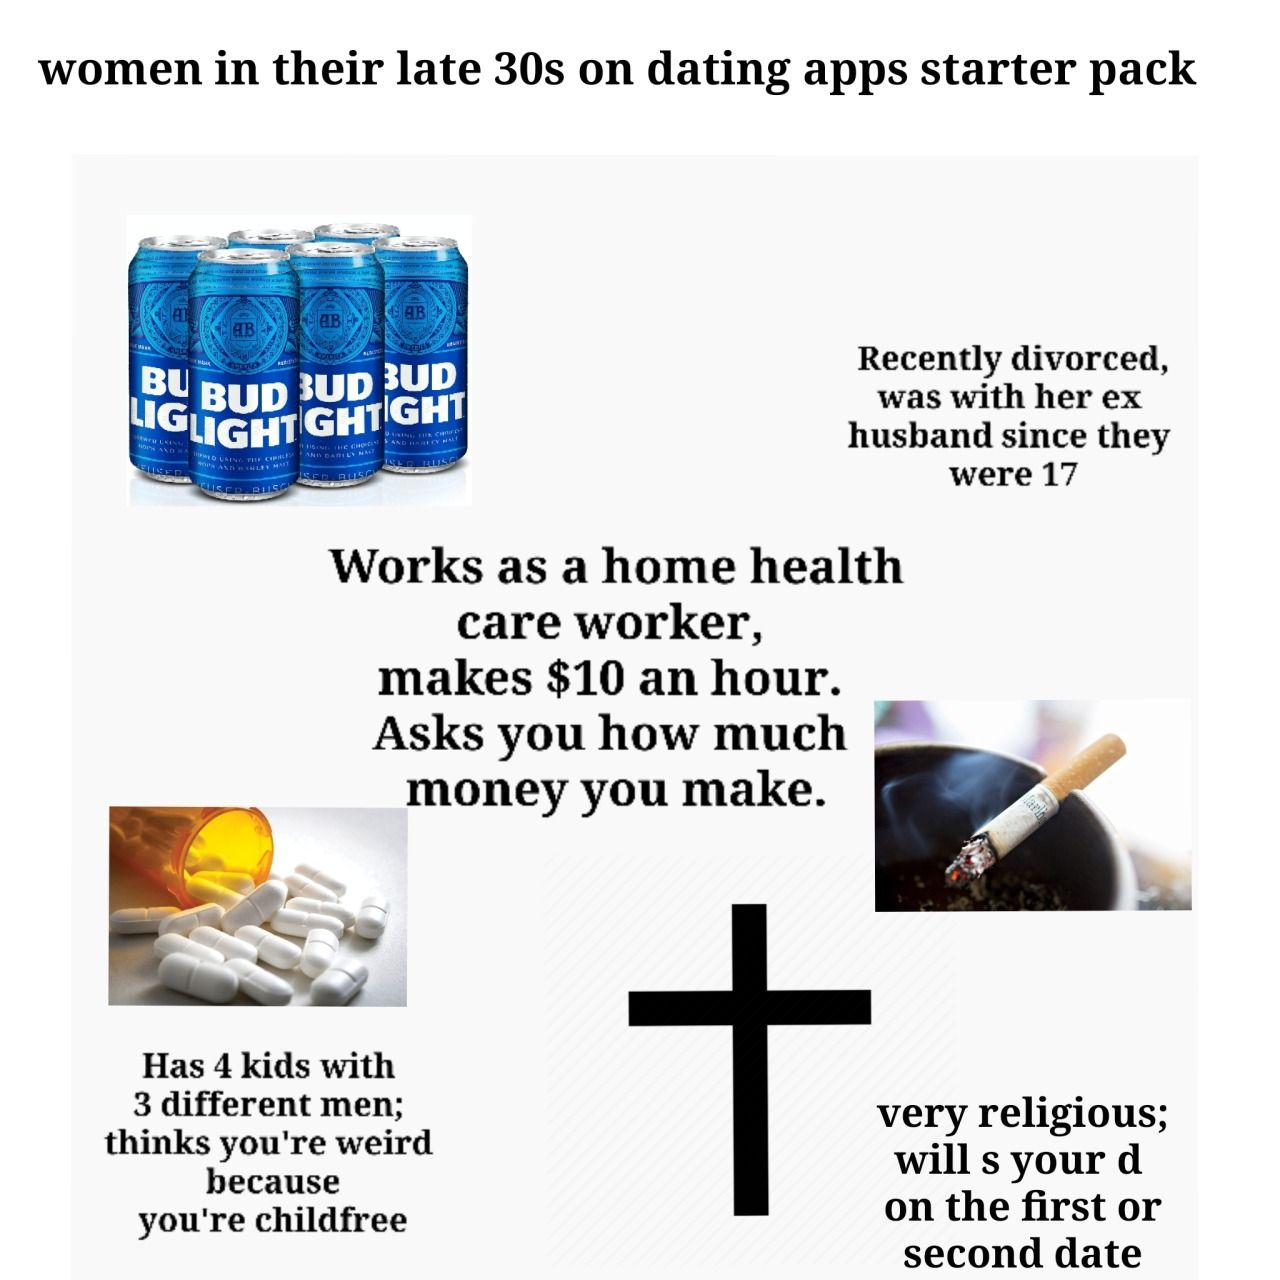 Women In Their Late 30s On Dating Apps Starter Pack Home Health Care Dating Apps Ex Husbands